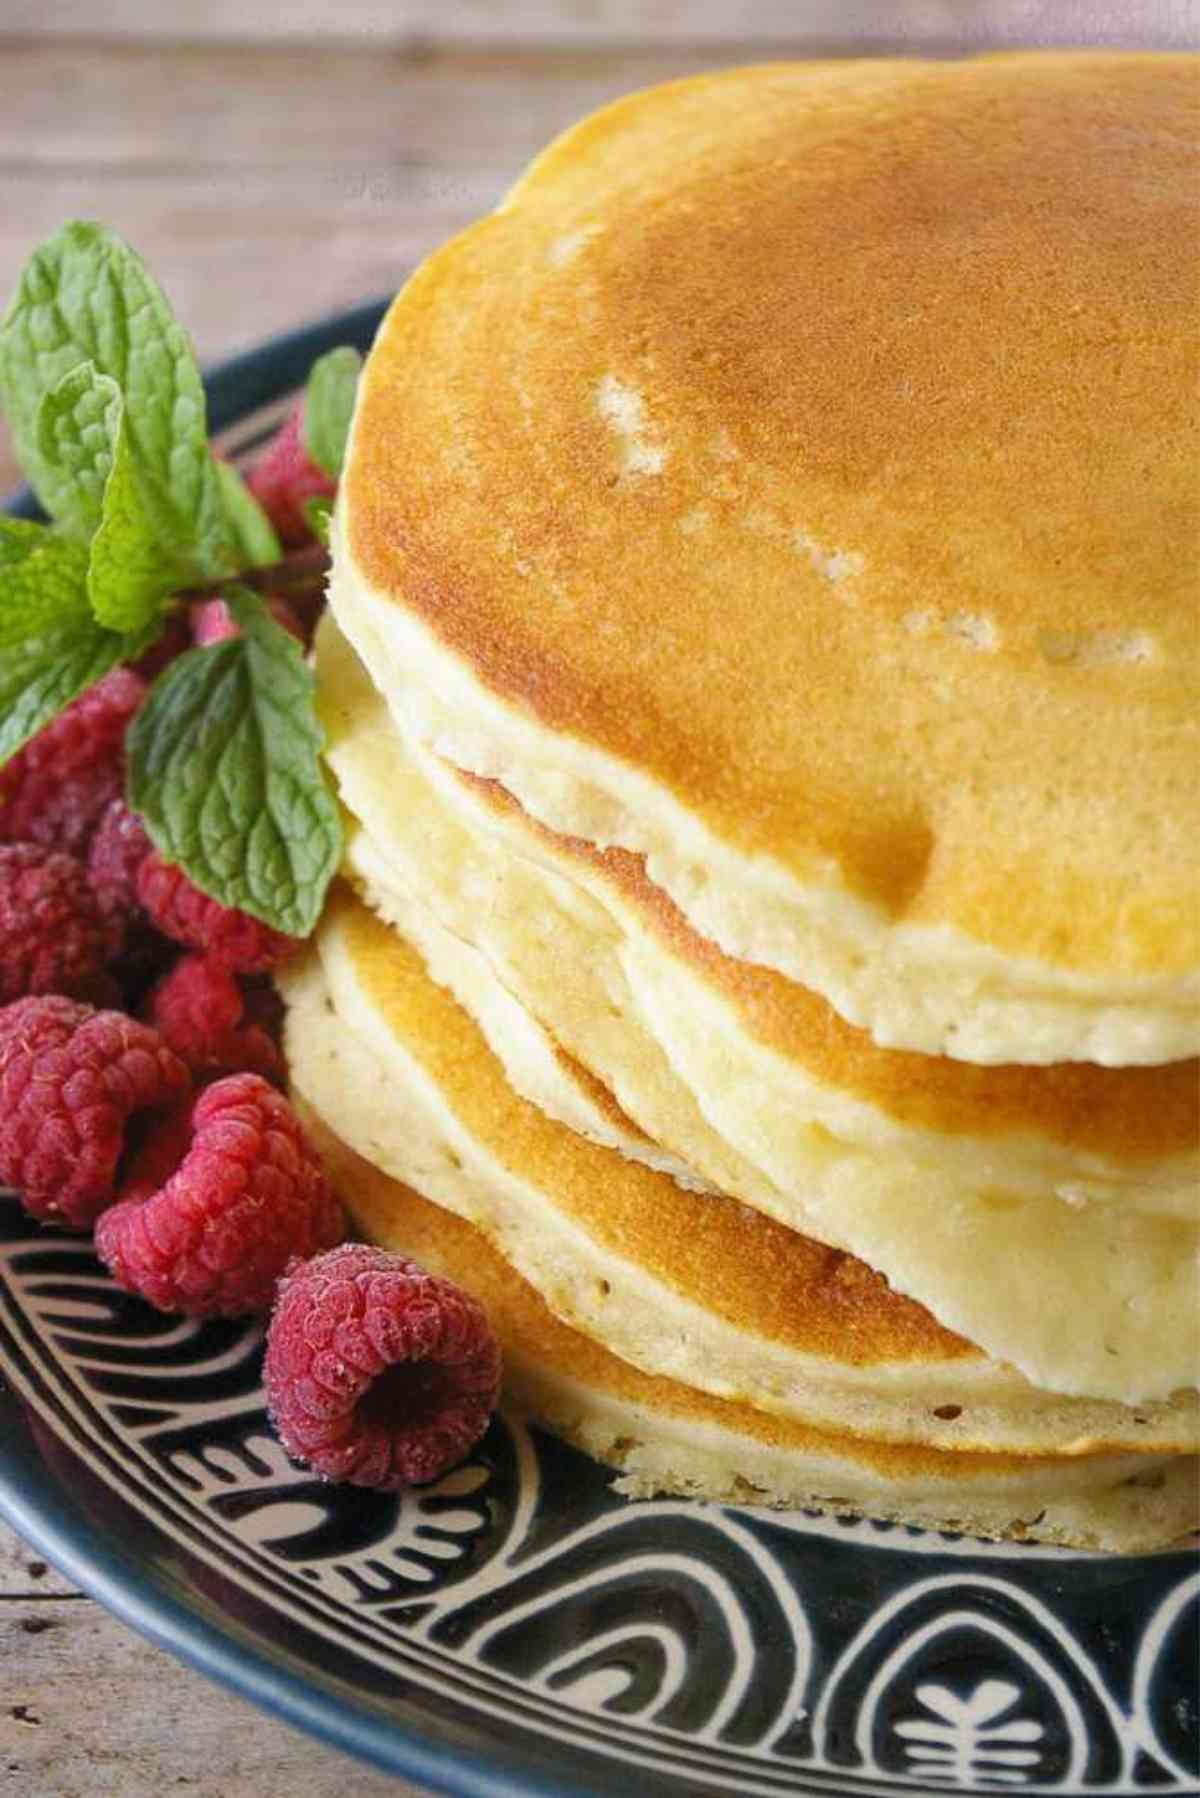 A hot stack of five fluffy buttermilk pancakes.